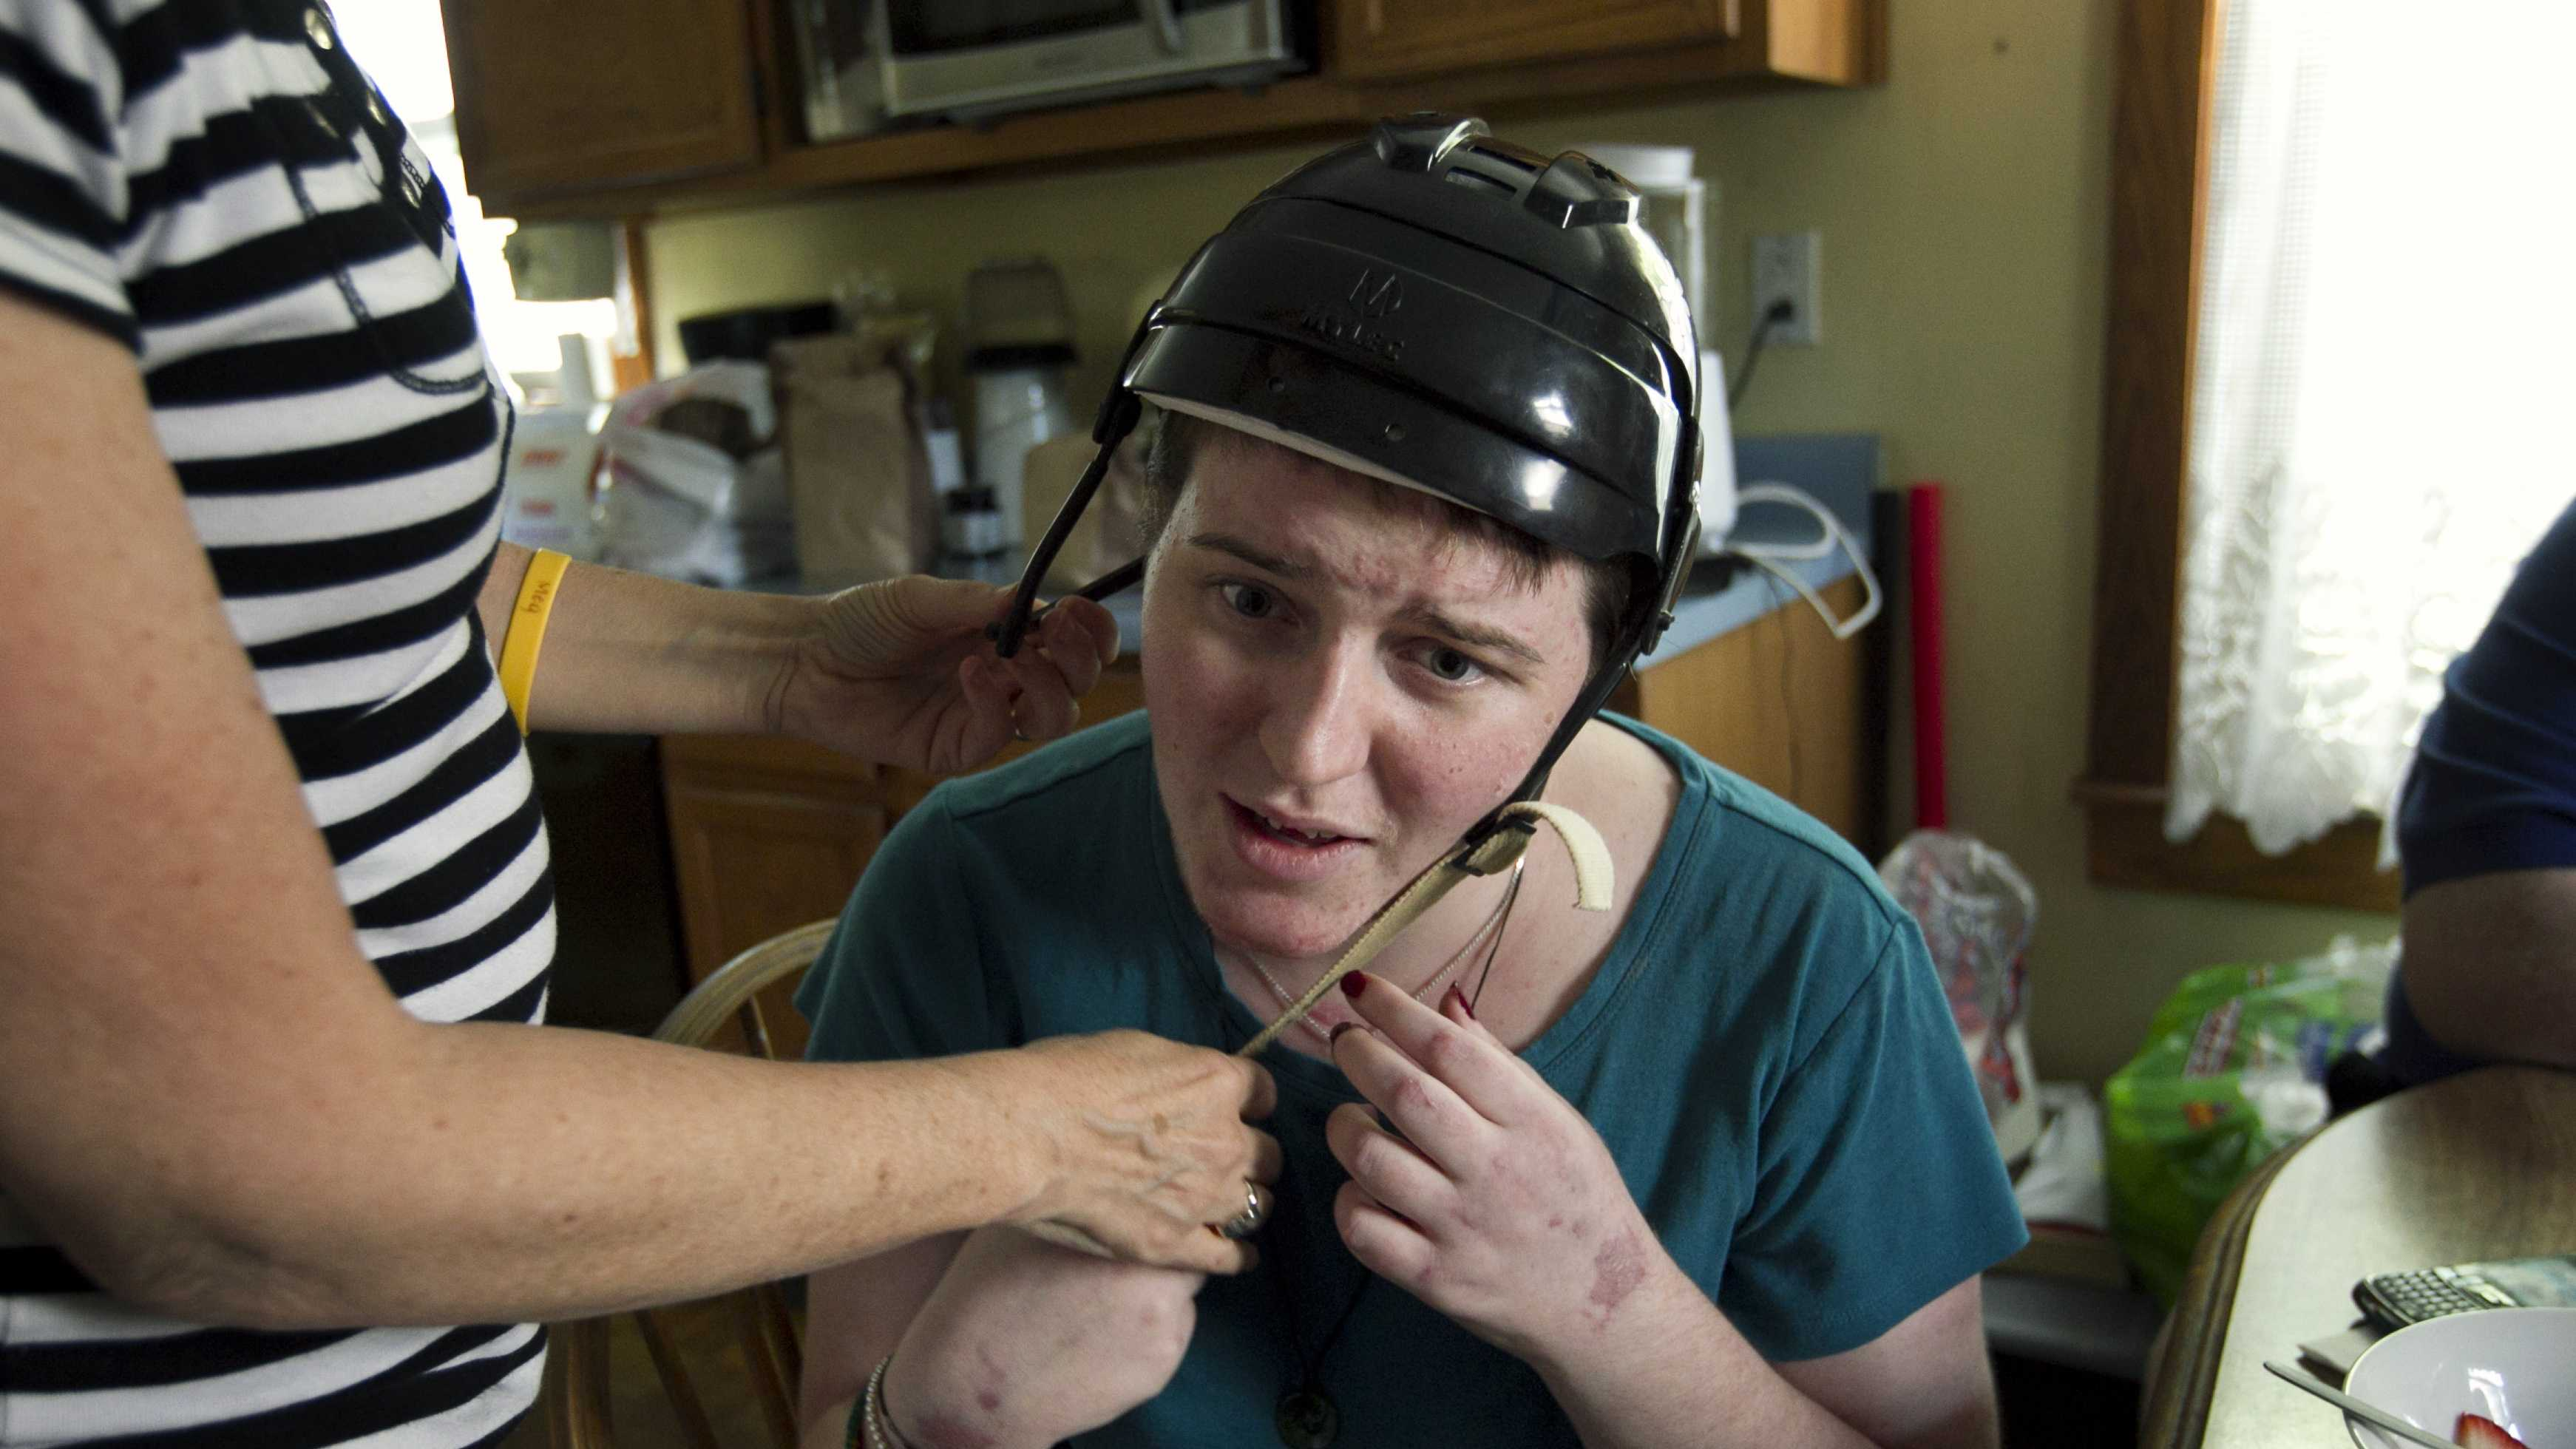 In this Thursday, Aug. 2, 2012 photo, Meg Theriault is helped with a helmet by her mother, Deb Theriault, left, as she talks with her family about the logistics of her daily life recovering from a traumatic brain injury at their home in Salisbury, Mass.